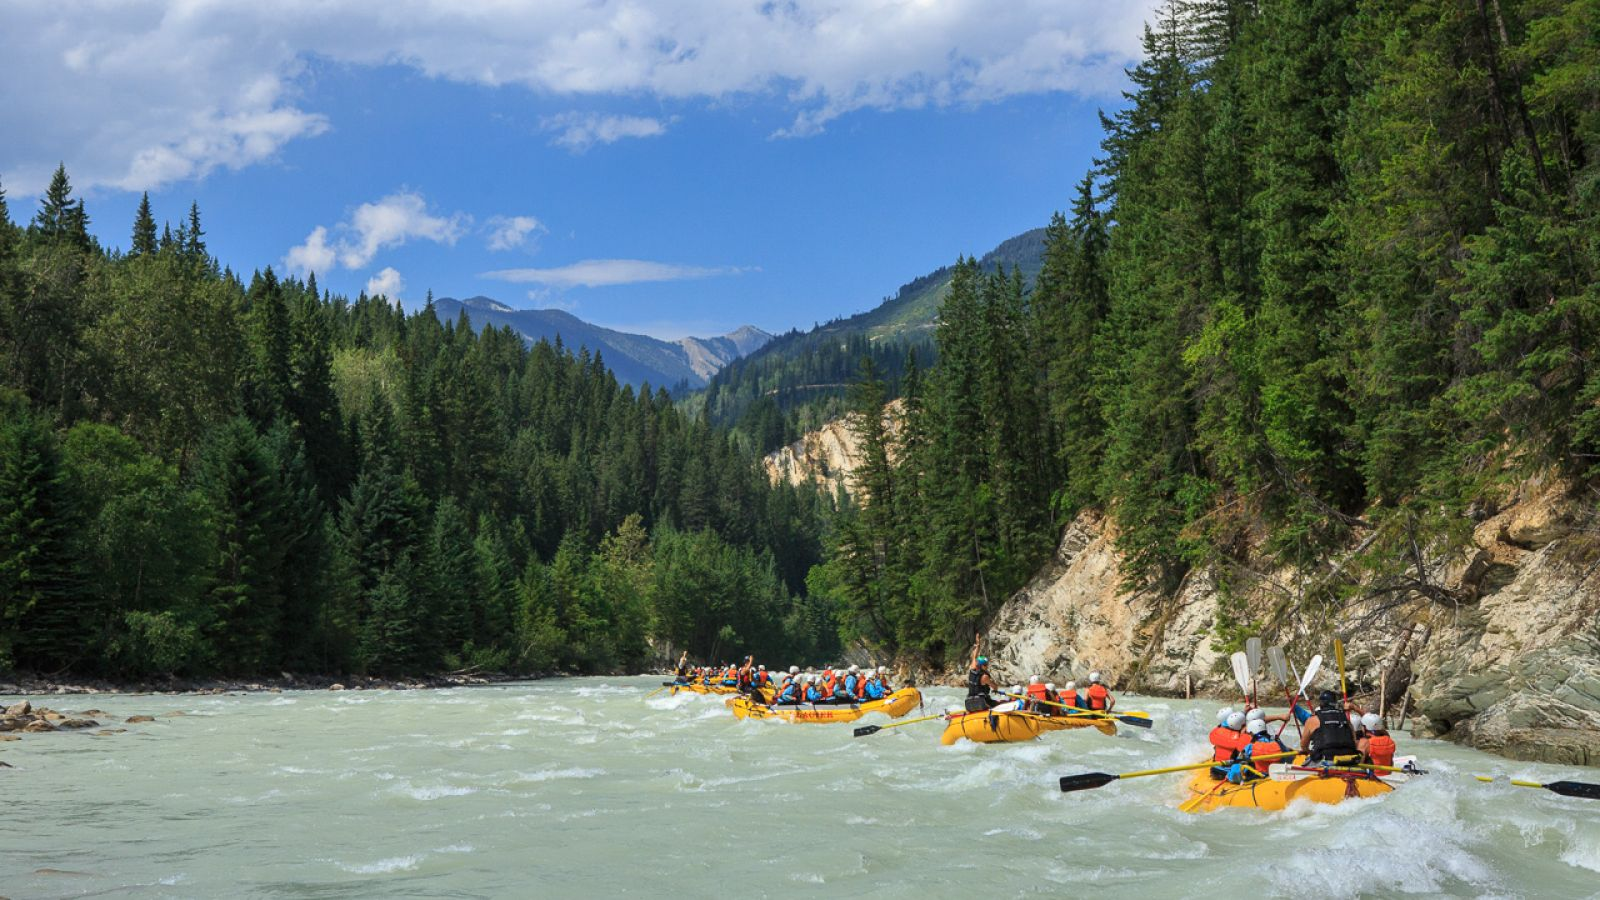 A great day for a rafting trip.